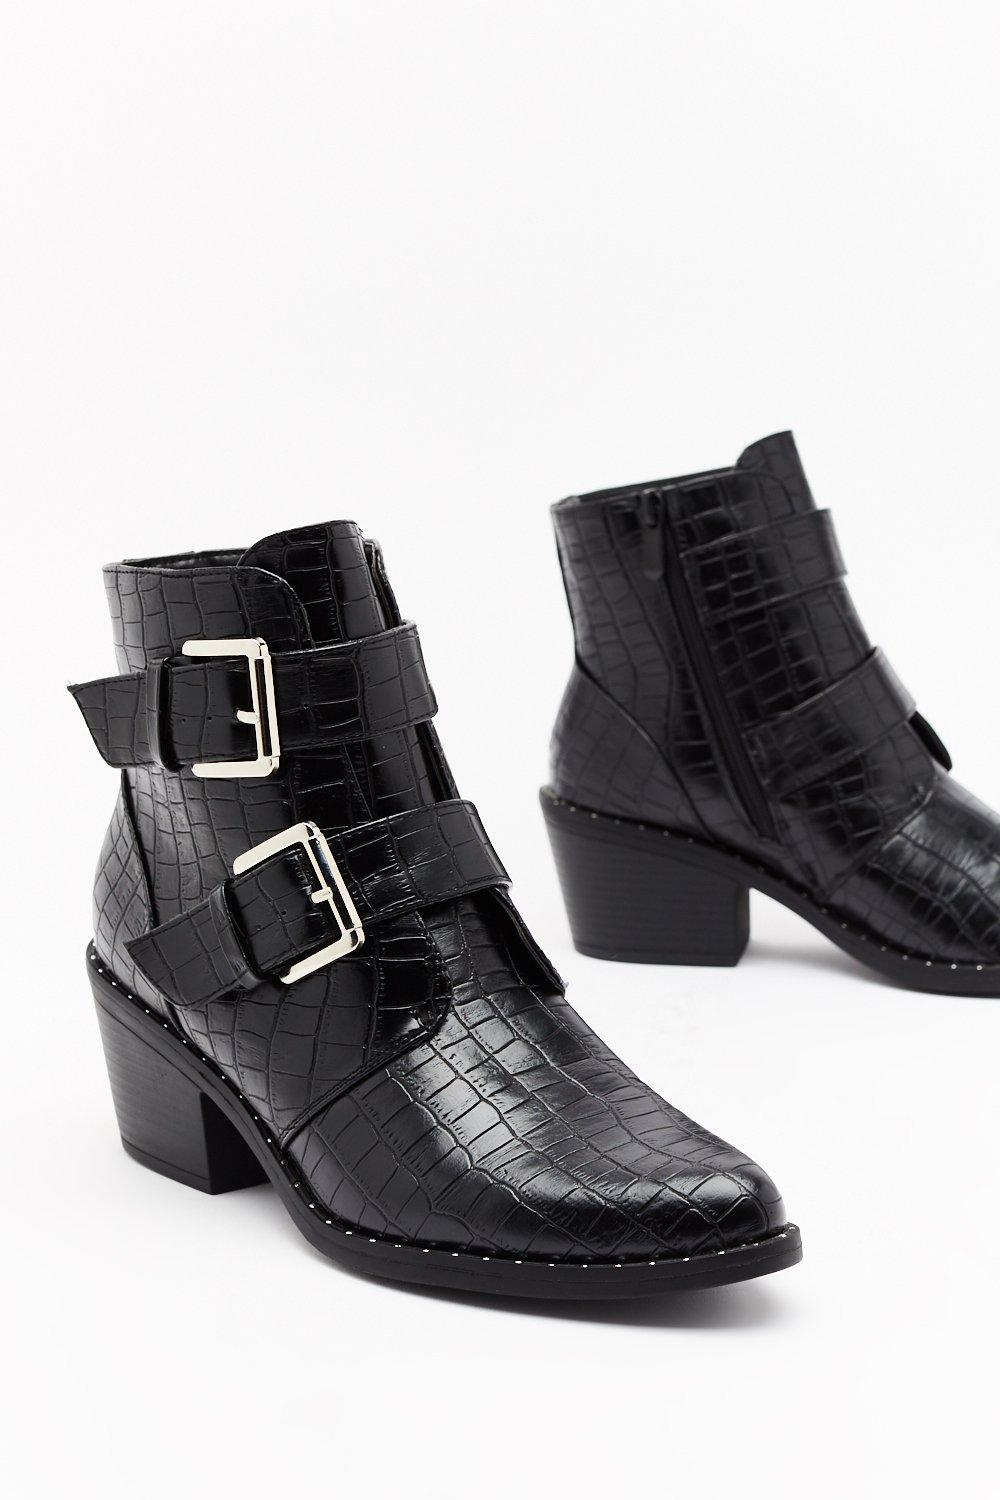 Image of What the Buck-le Faux Leather Croc Boots